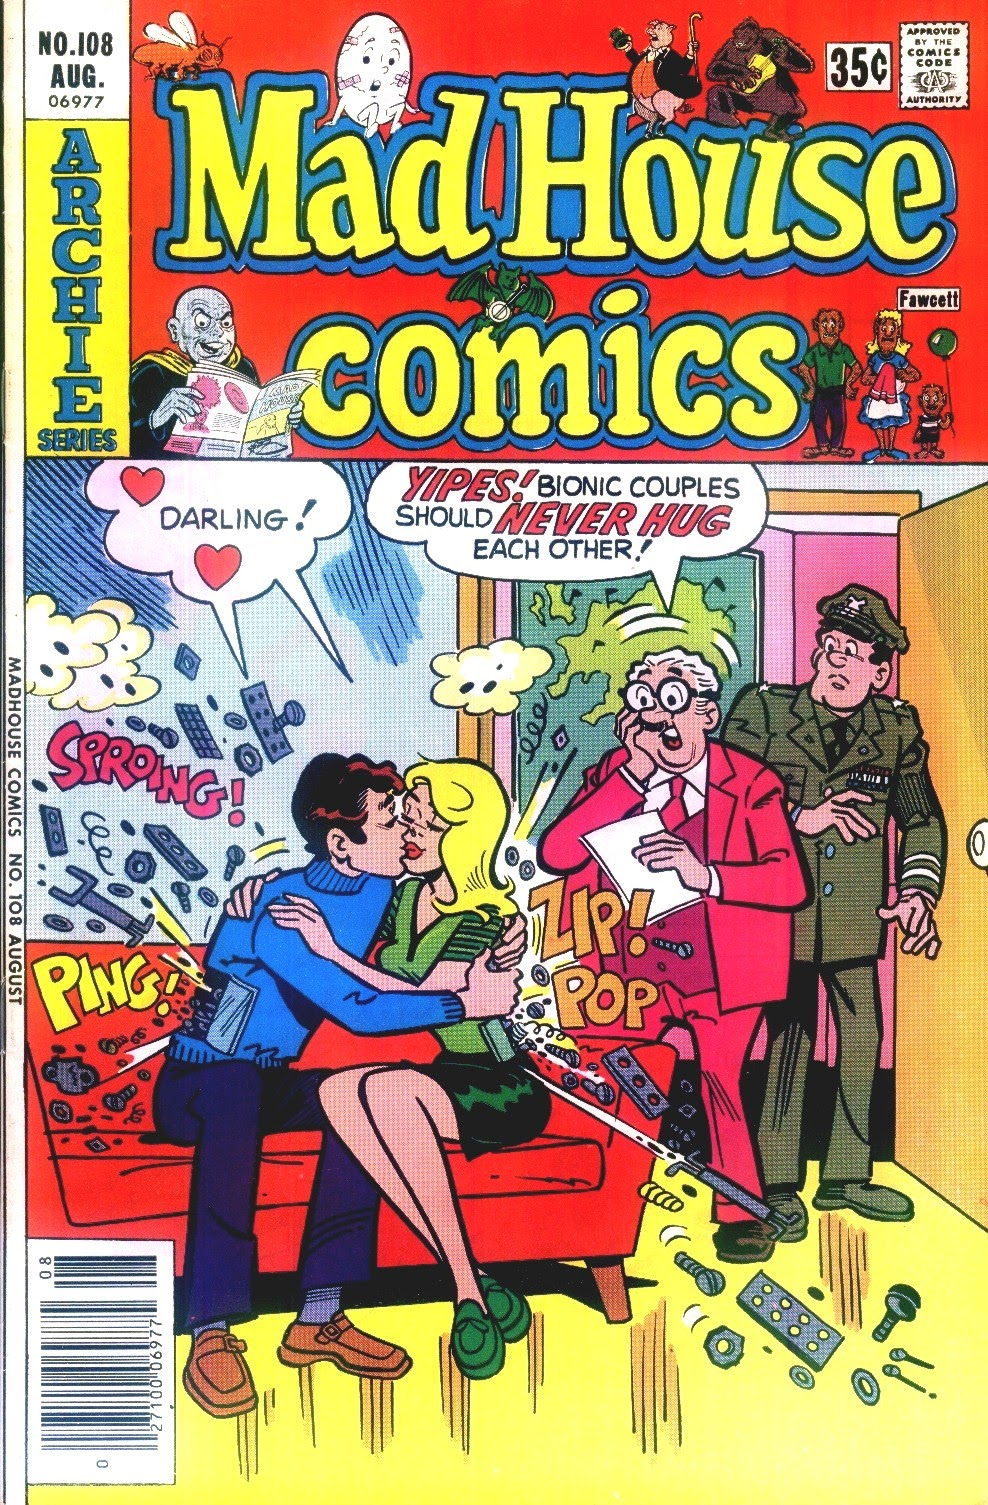 Read online Madhouse Comics comic -  Issue #108 - 1